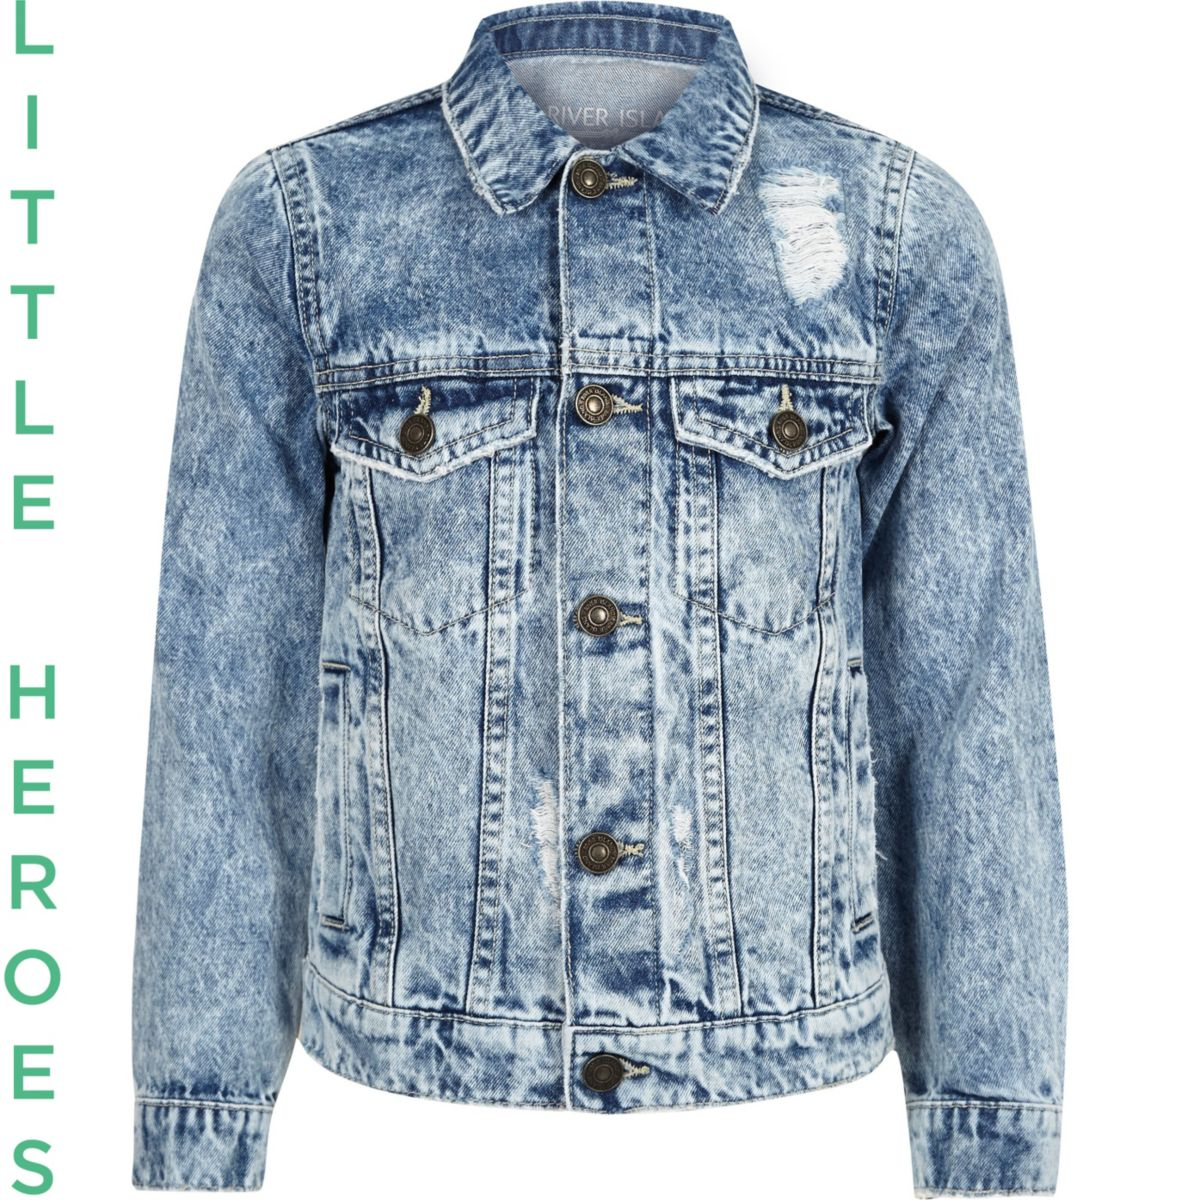 boys' denim jackets - up to 70% off. Well, darn. This item just sold out. Select notify me & we'll tell you when it's back in stock.